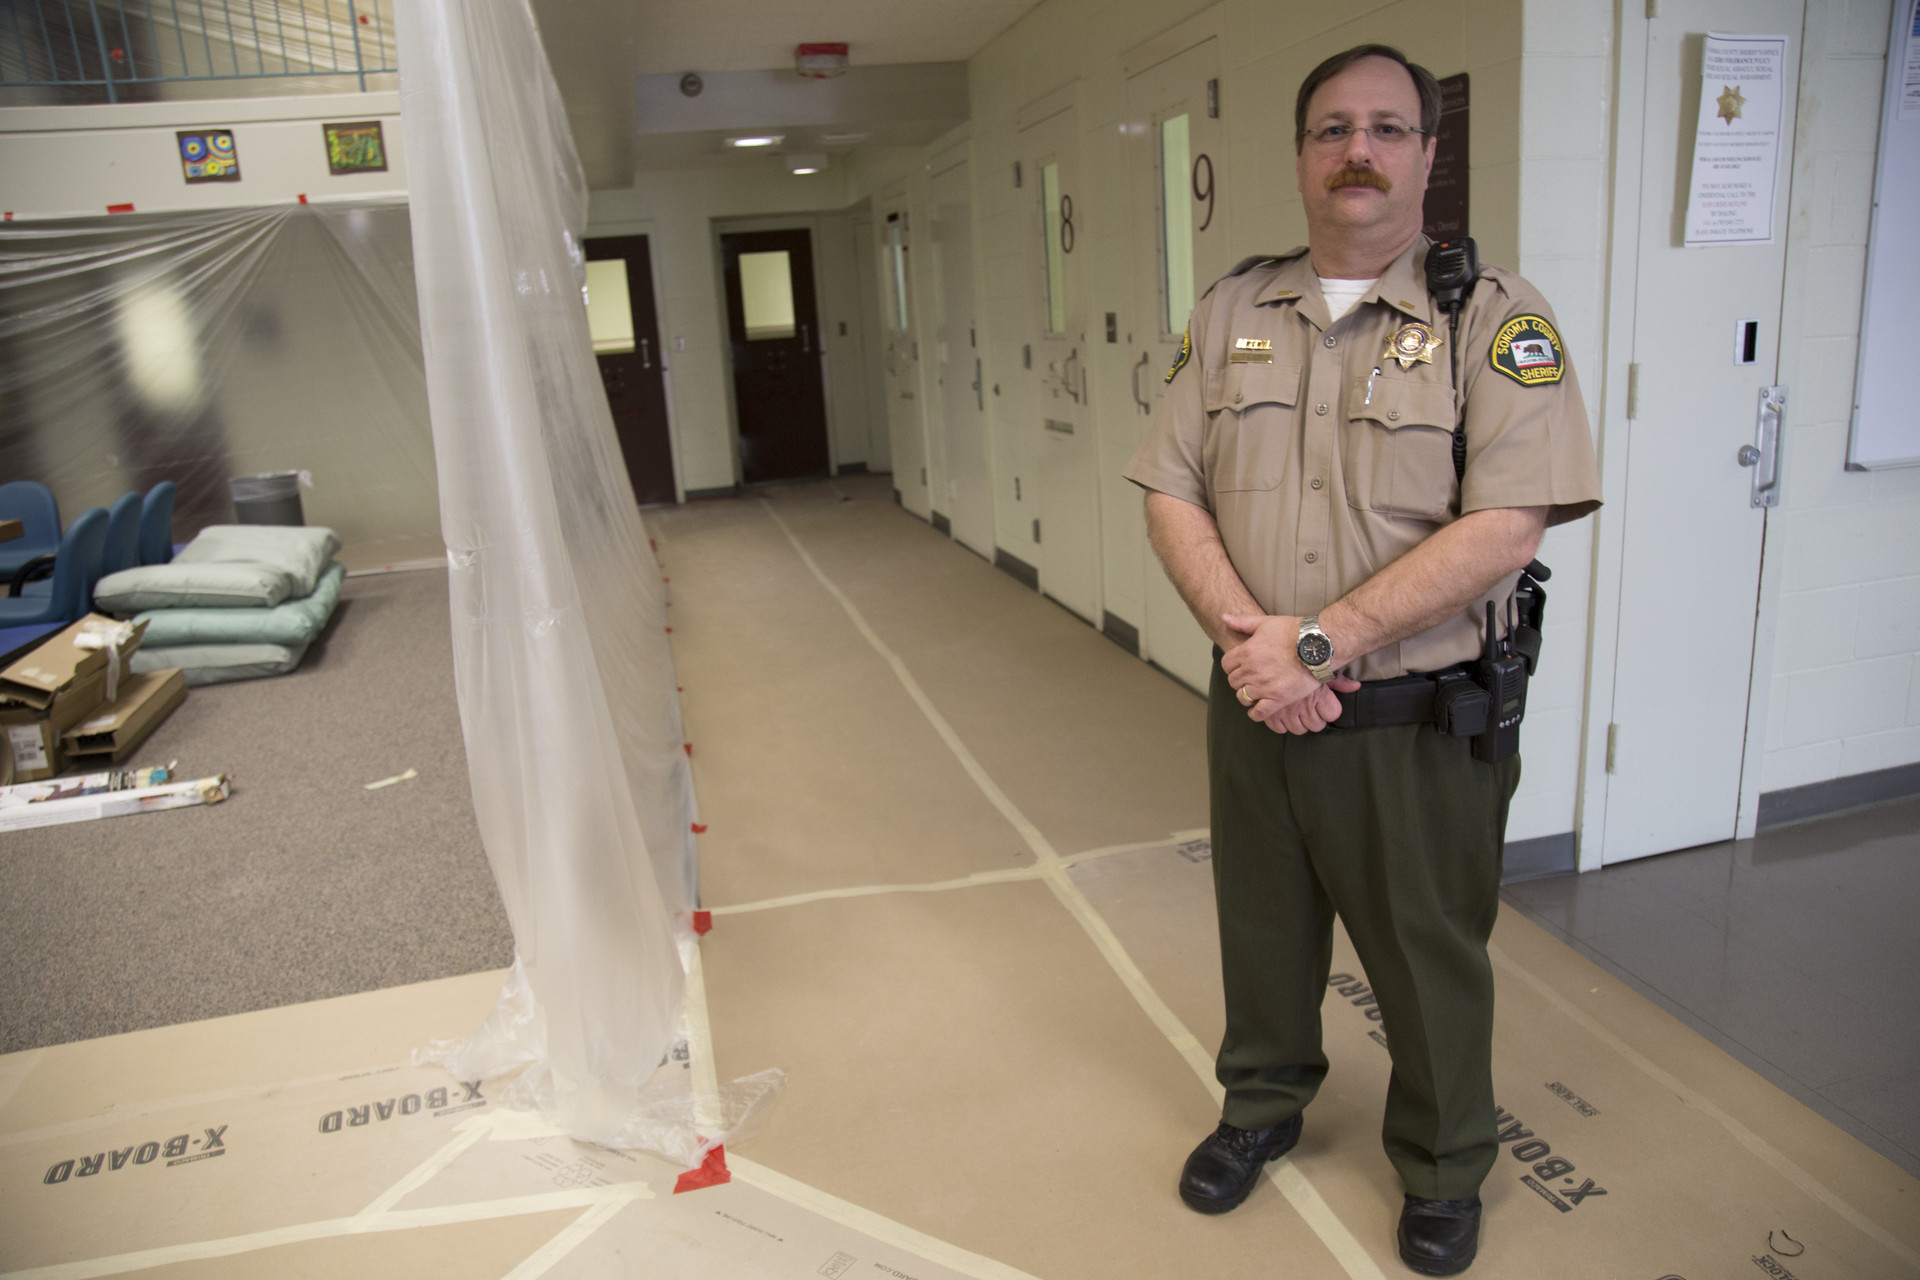 Lt. Mike Toby supervises Sonoma County Main Jail's three mental health units. He's standing in a unit being renovated to give inmates more outside of cell time.